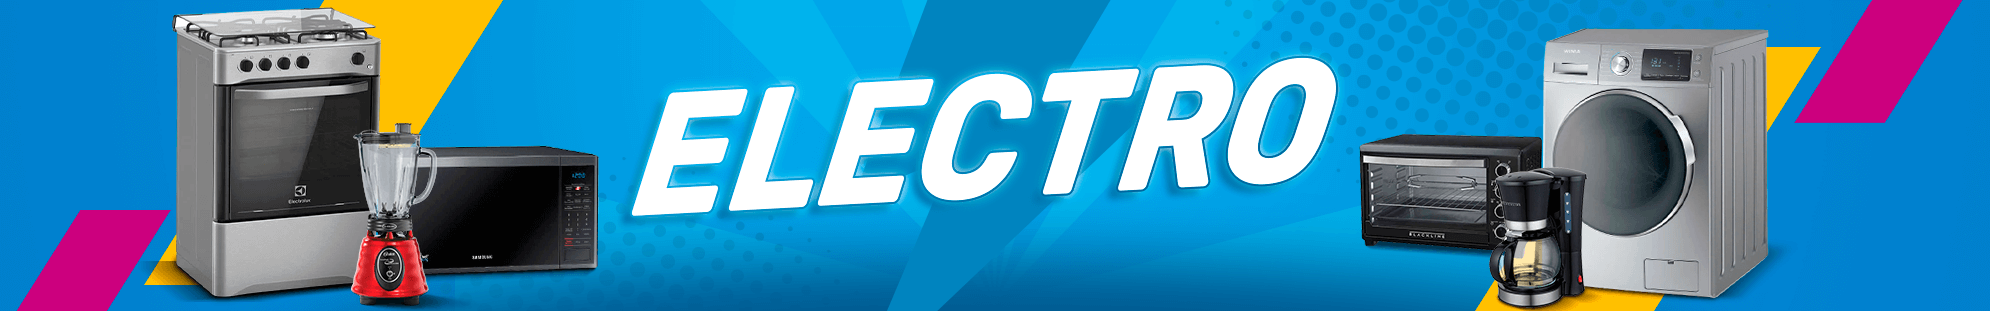 Banner Electro